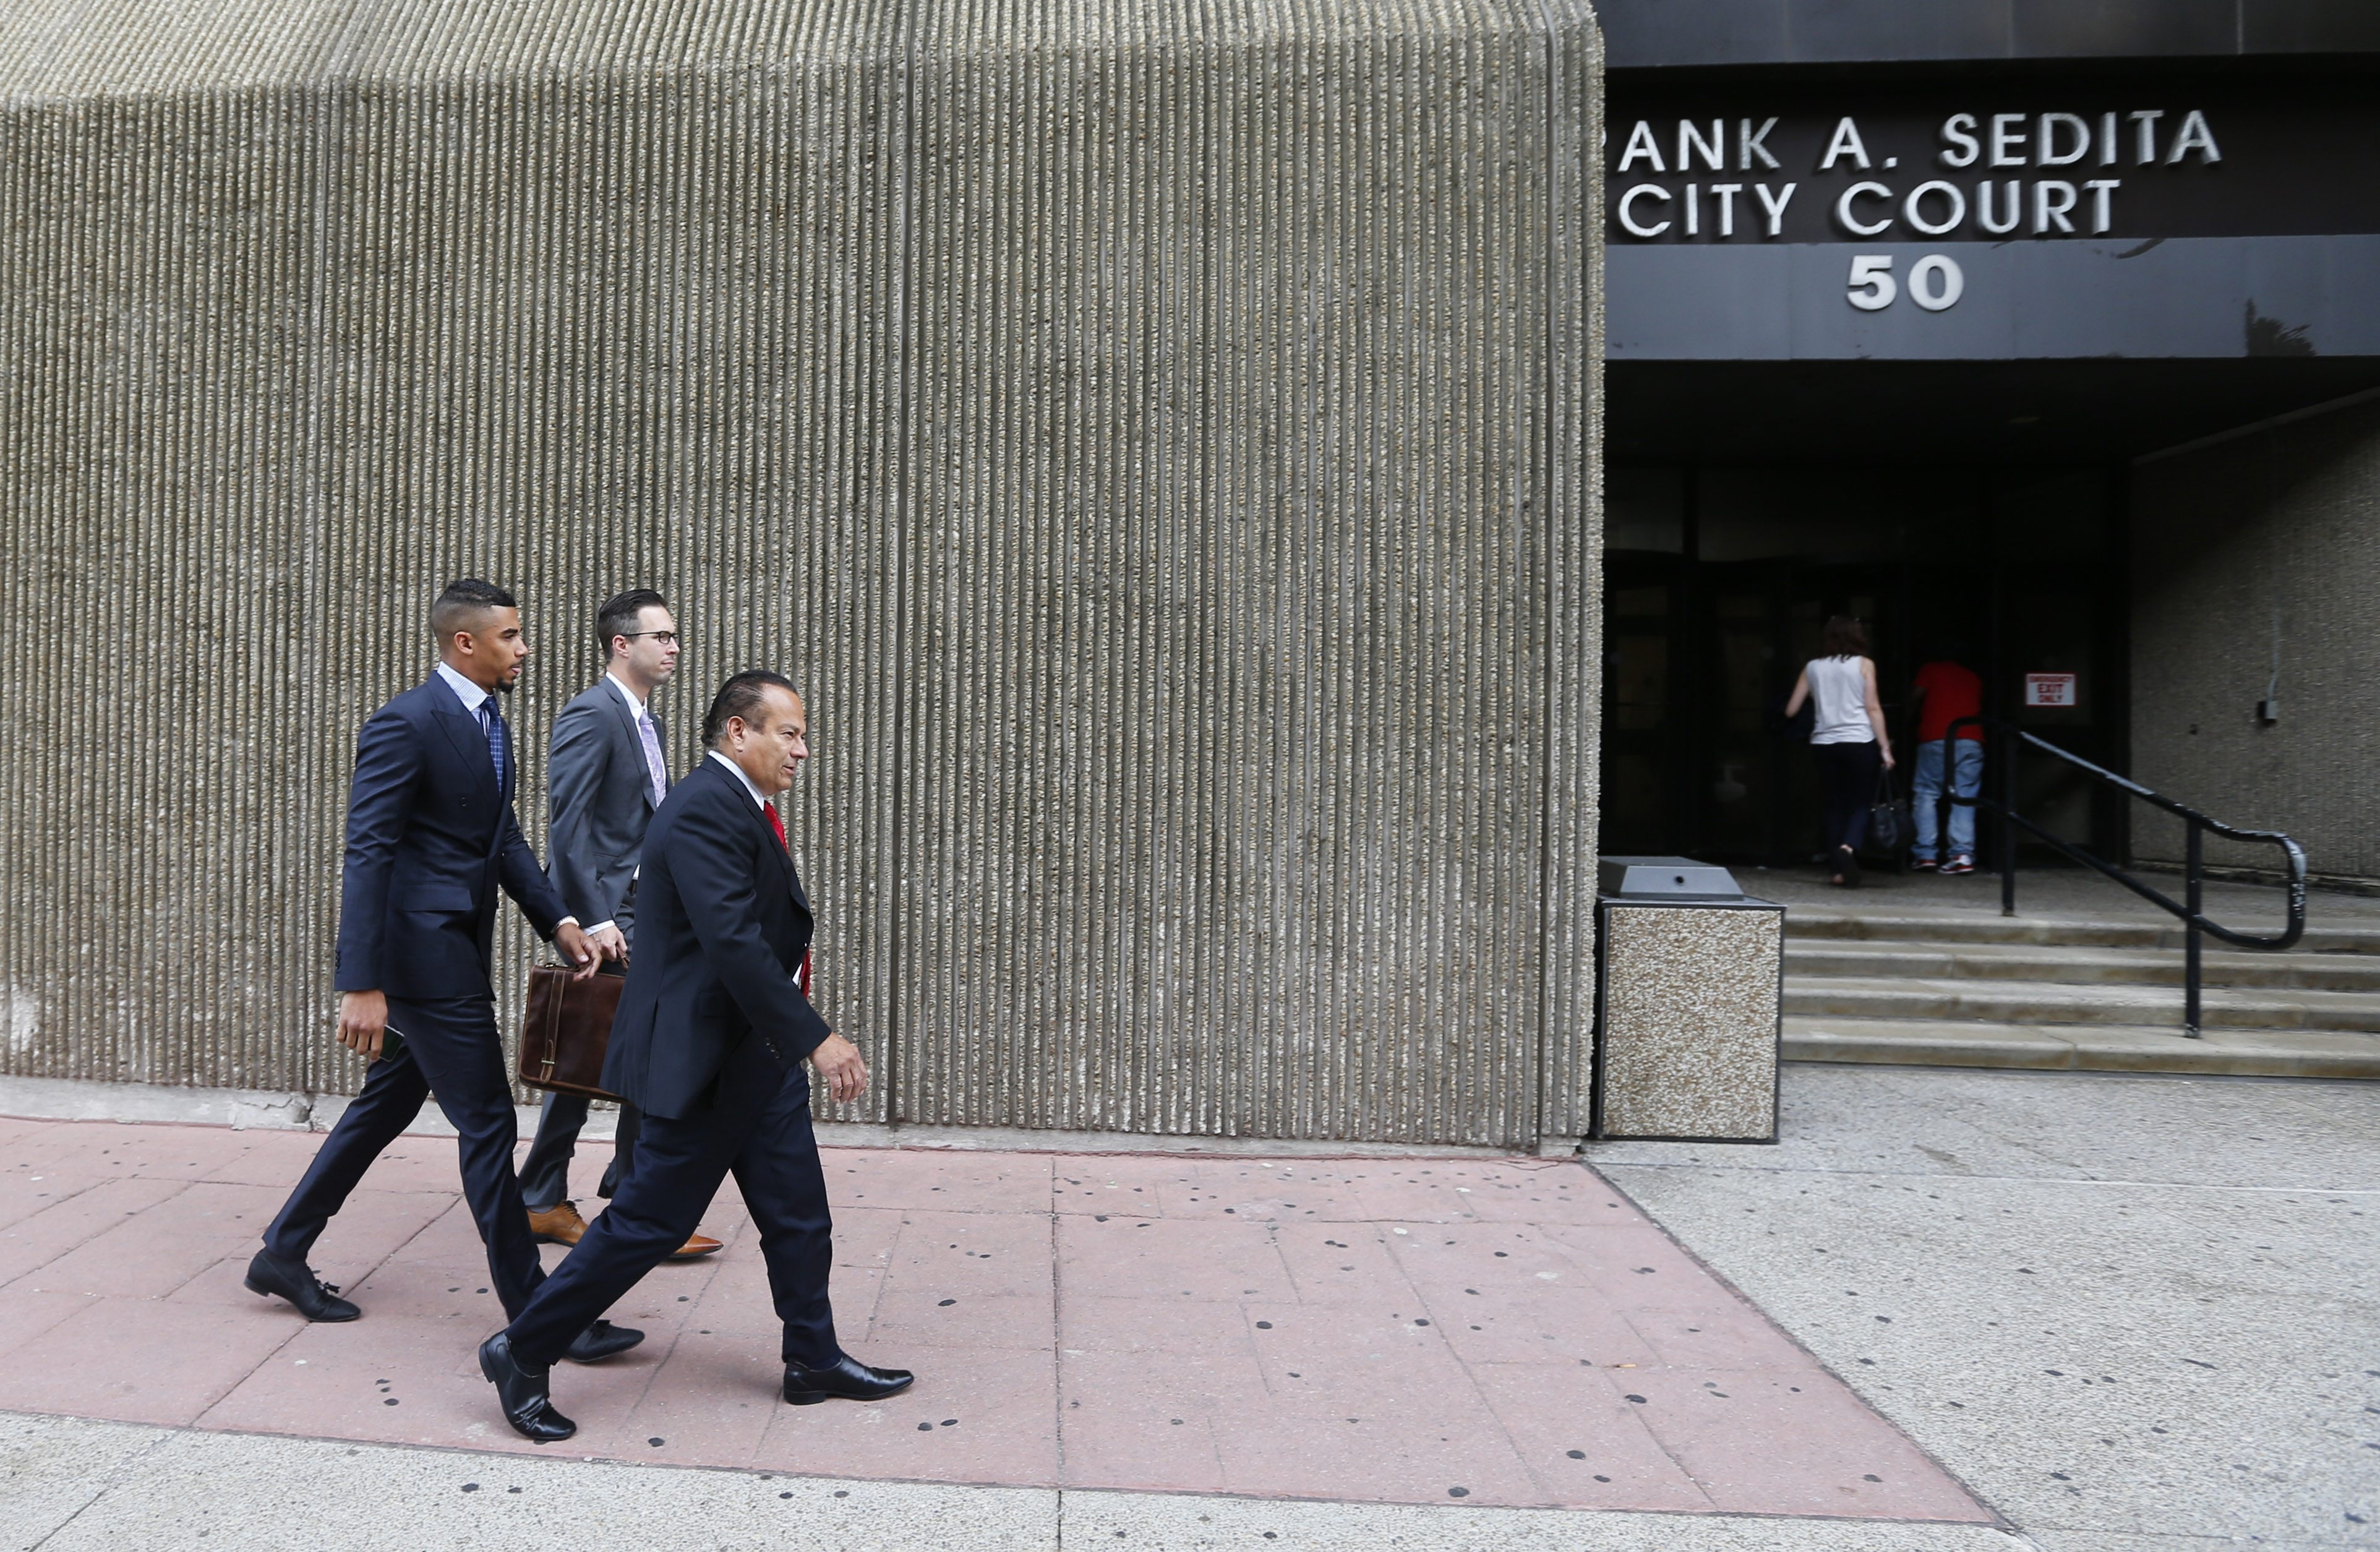 Buffalo Sabres forward Evander Kane enters city court with his attorneys Monday, August 1, 2016. (Mark Mulville/Buffalo News)